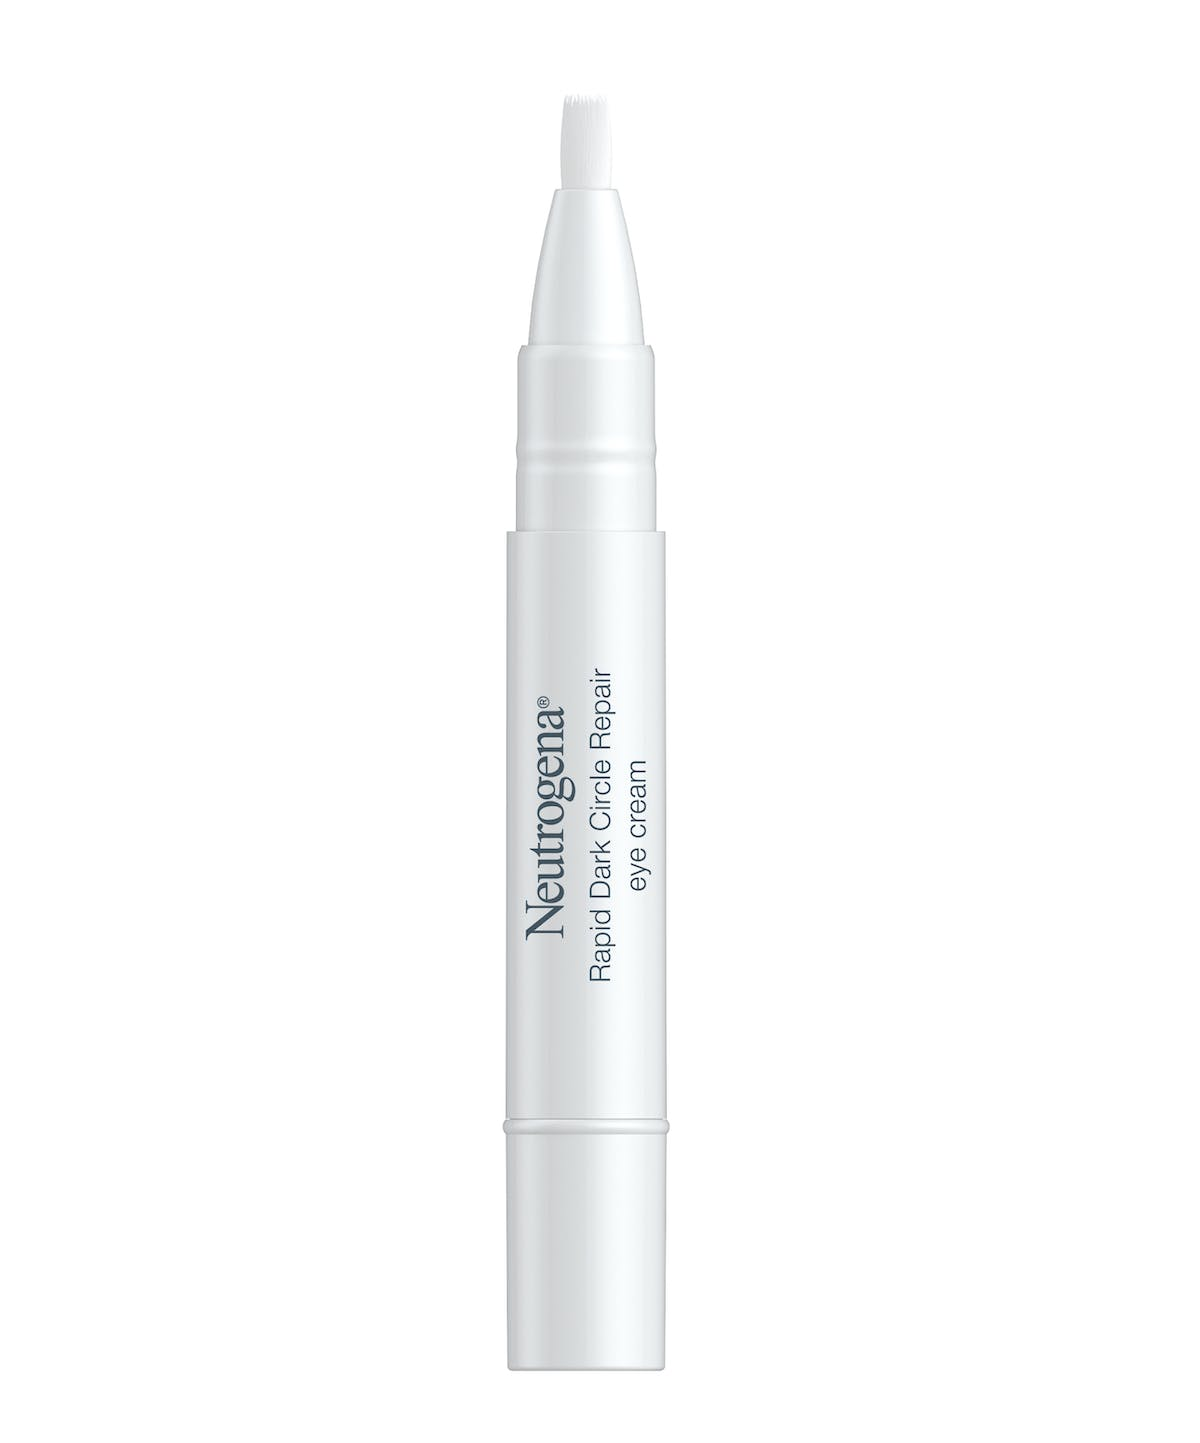 Rapid Tone Repair Eye Cream For Dark Circles Neutrogena